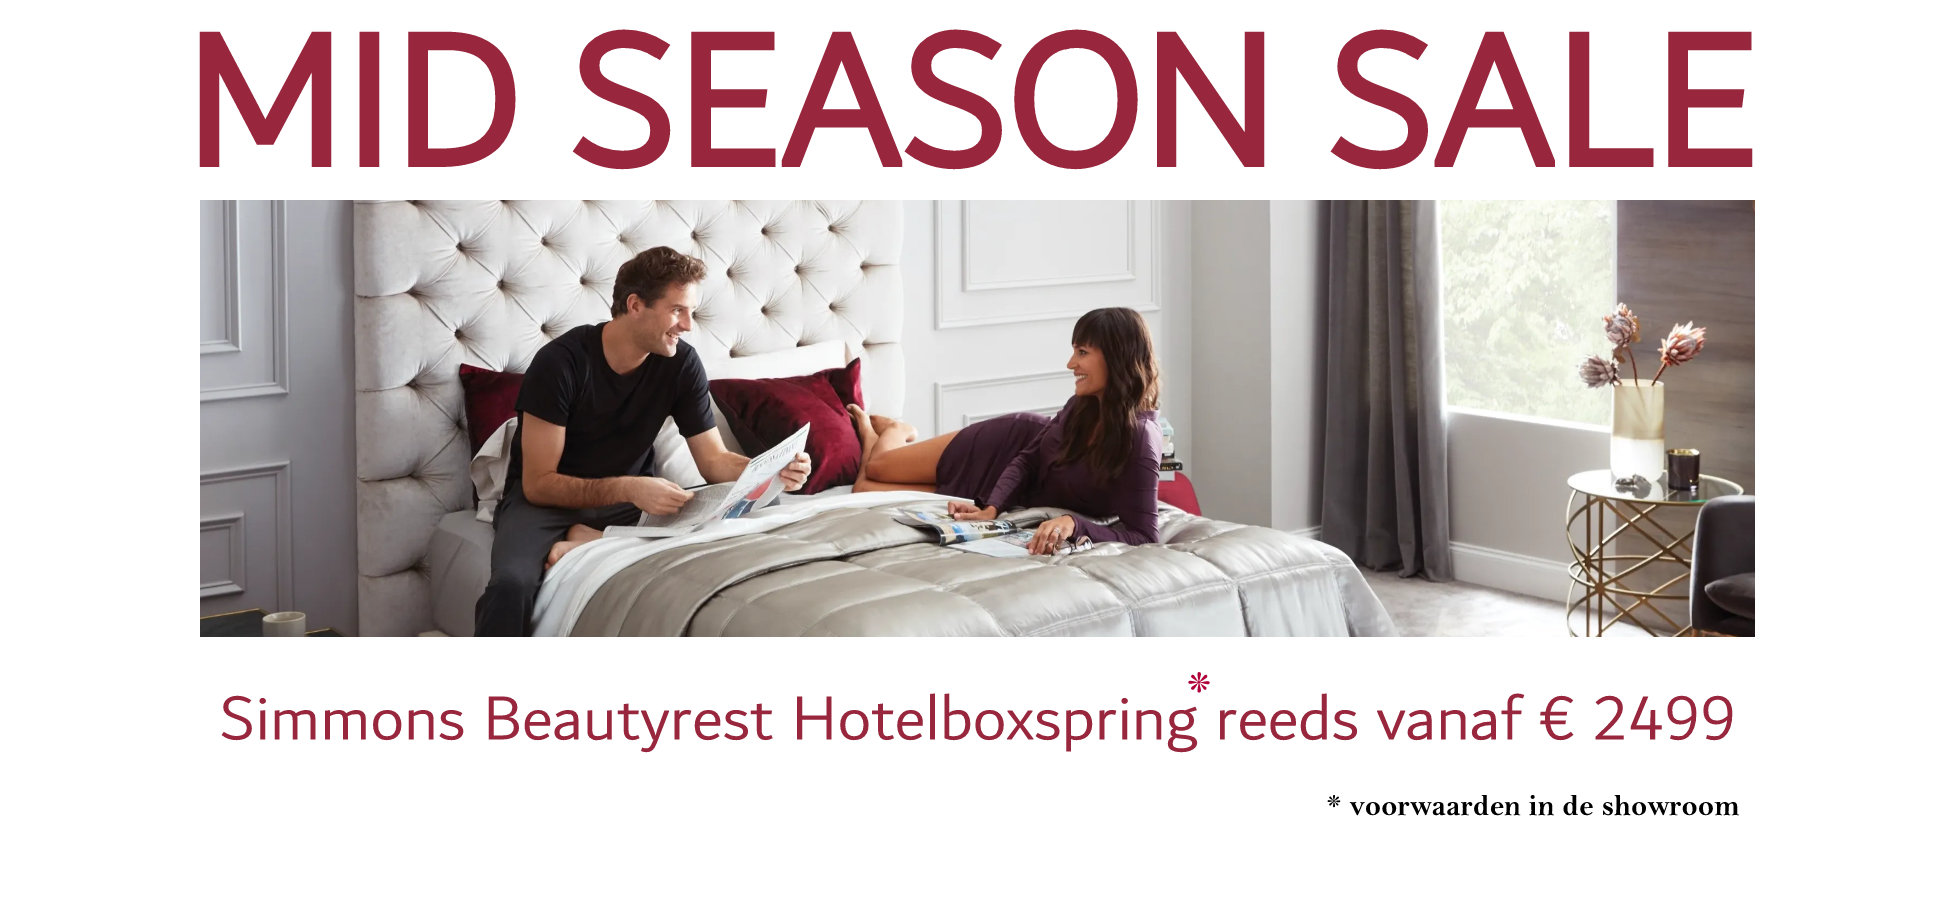 Mid Season Sale Beautyrest Hotelboxspring